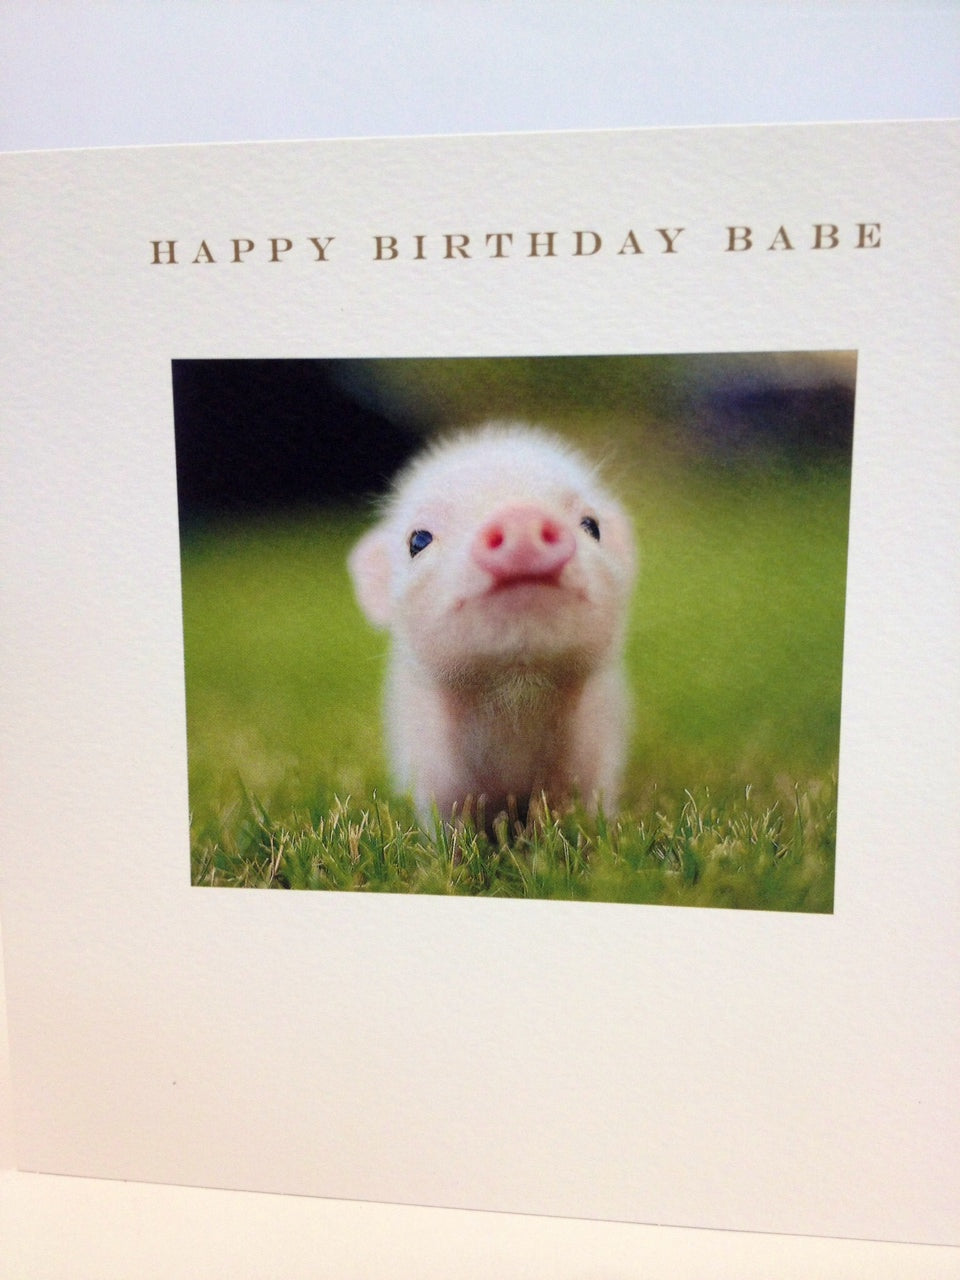 Happy Birthday Babe Message card